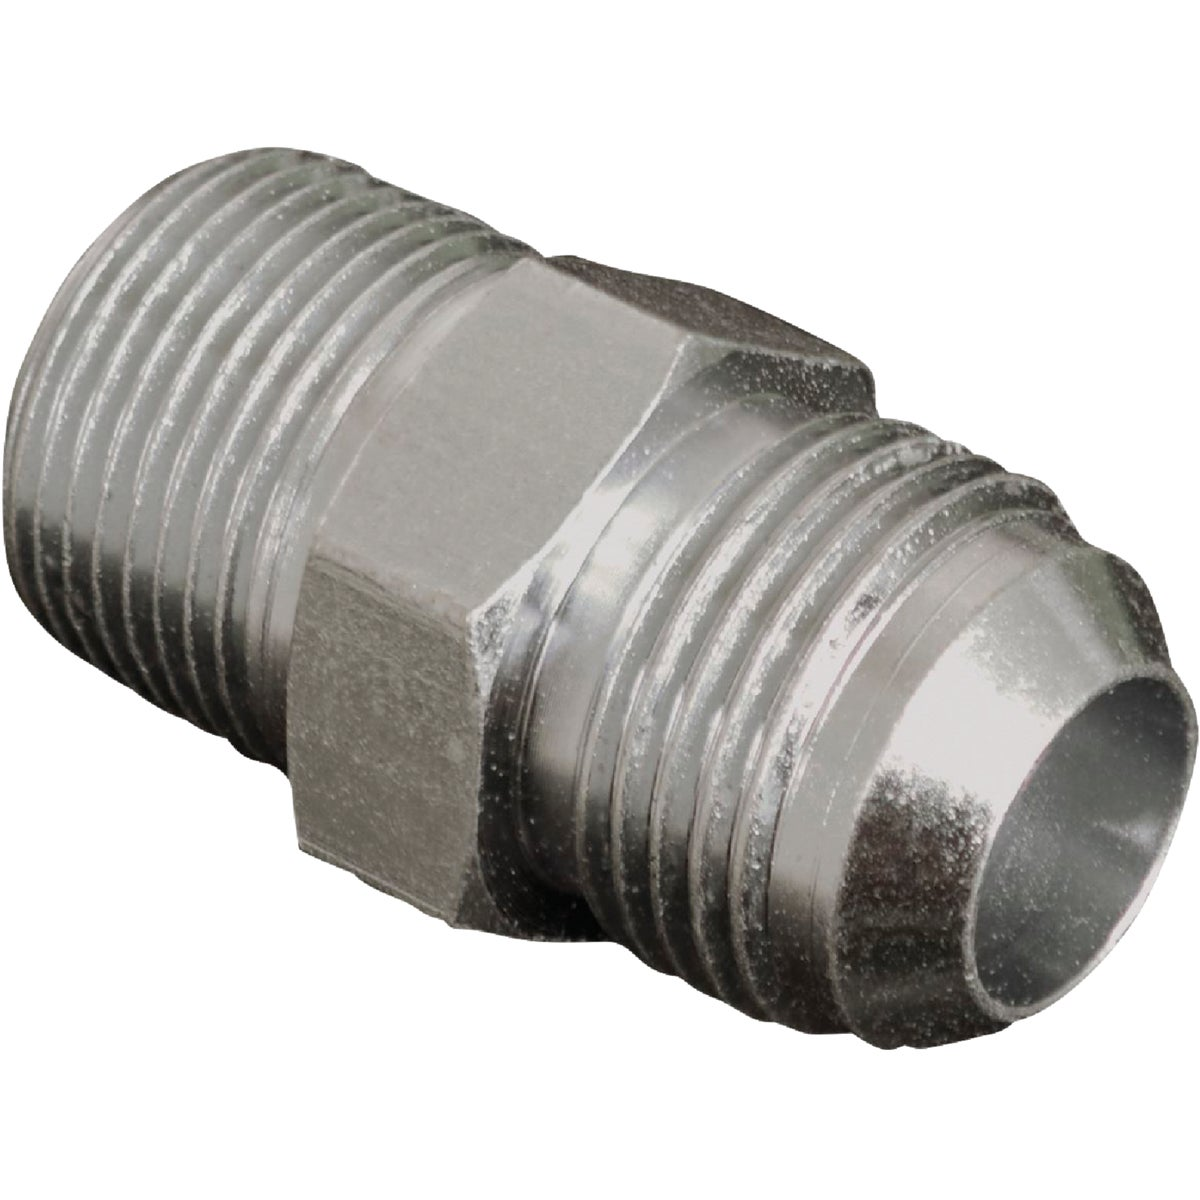 1/2MJICX1/2M HYD ADAPTER - 39006525 by Apache Hose Belting